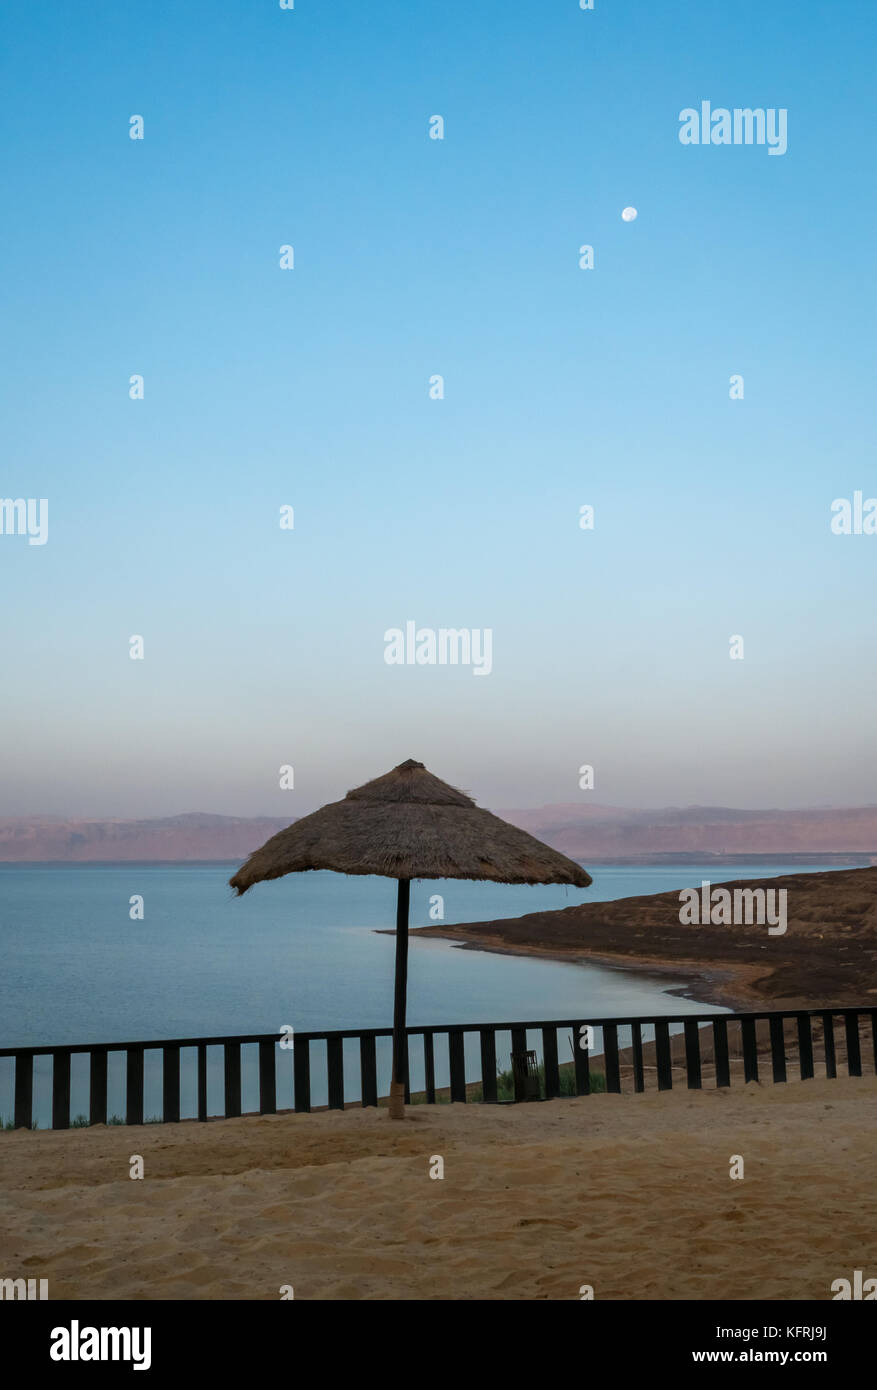 Early morning with moon in the sky at Holiday Inn Dead Sea resort, no people on the beach and straw umbrella, Jordan, - Stock Image